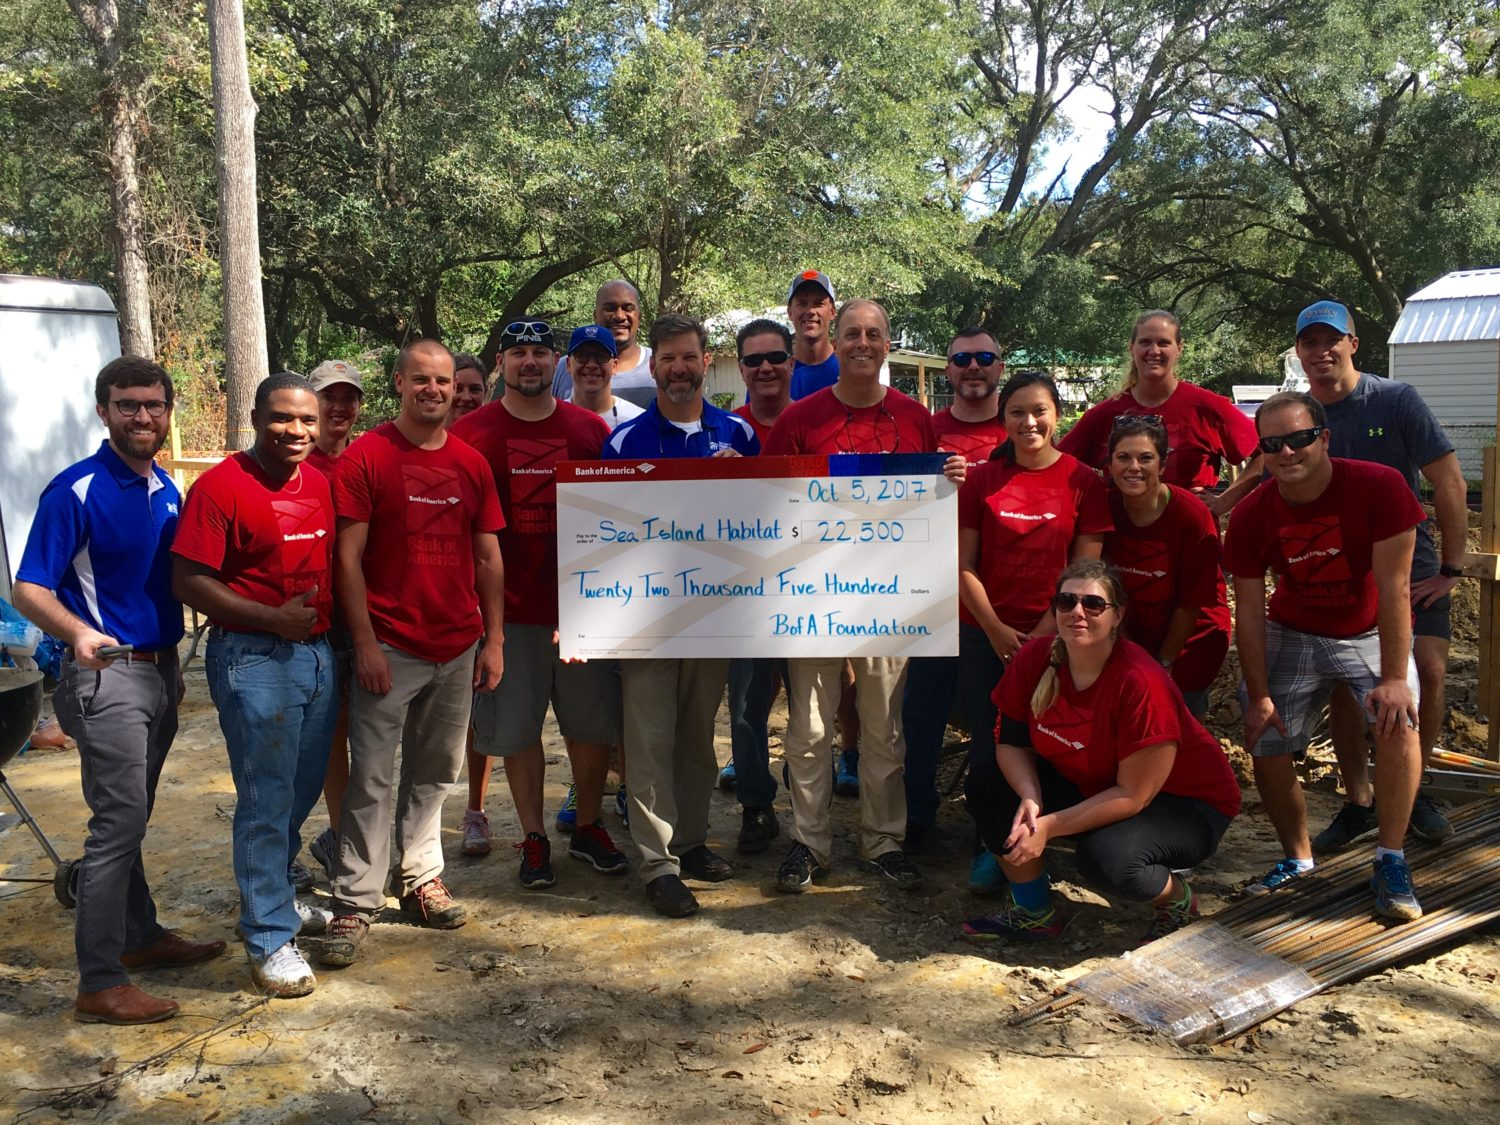 Habitat for Humanity and Bank of American build group